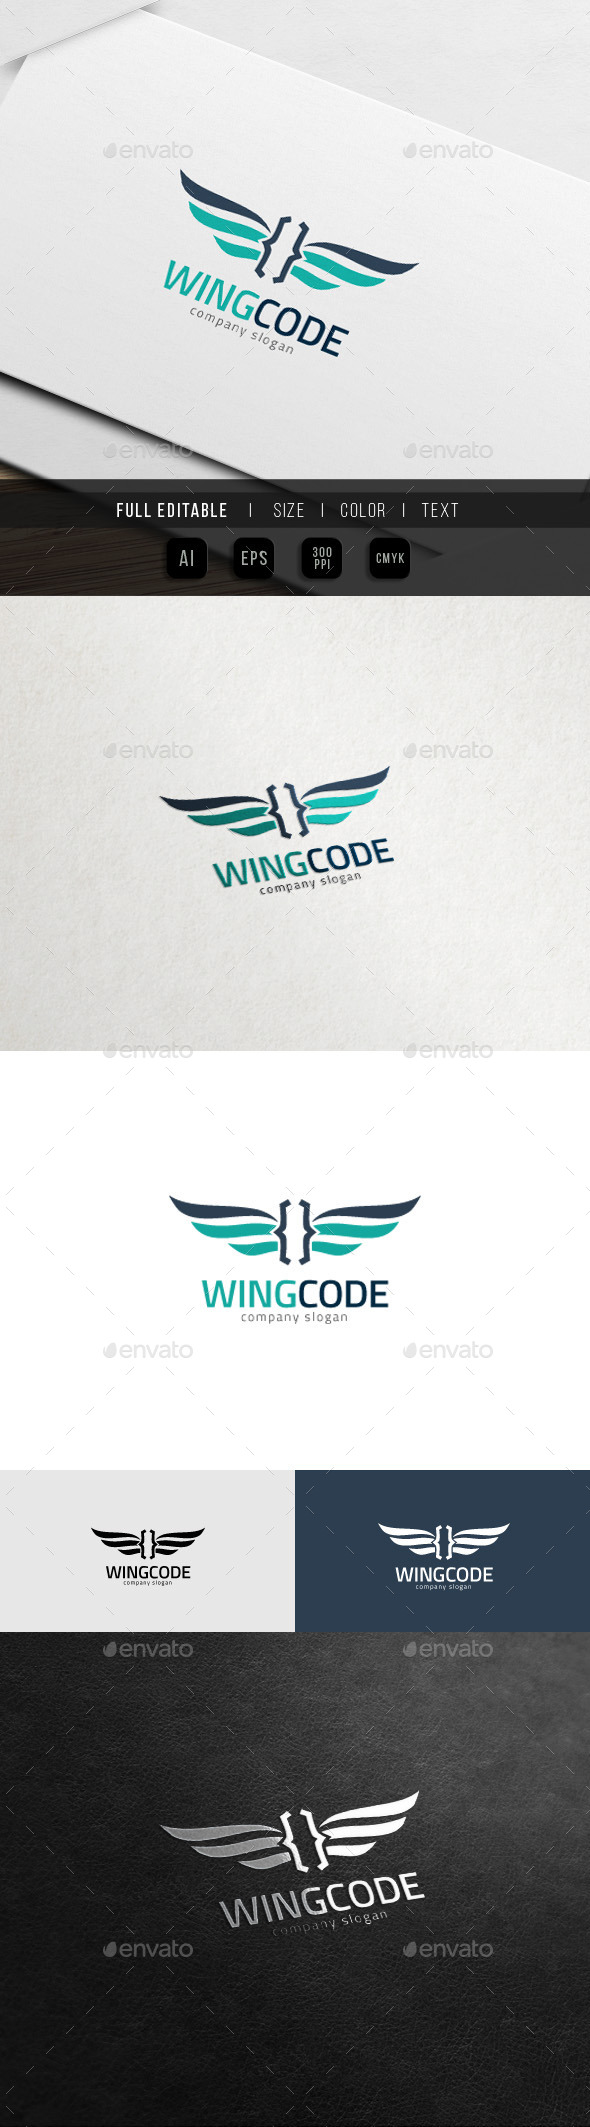 Wing Code - Flying Website Theme Logo - Symbols Logo Templates